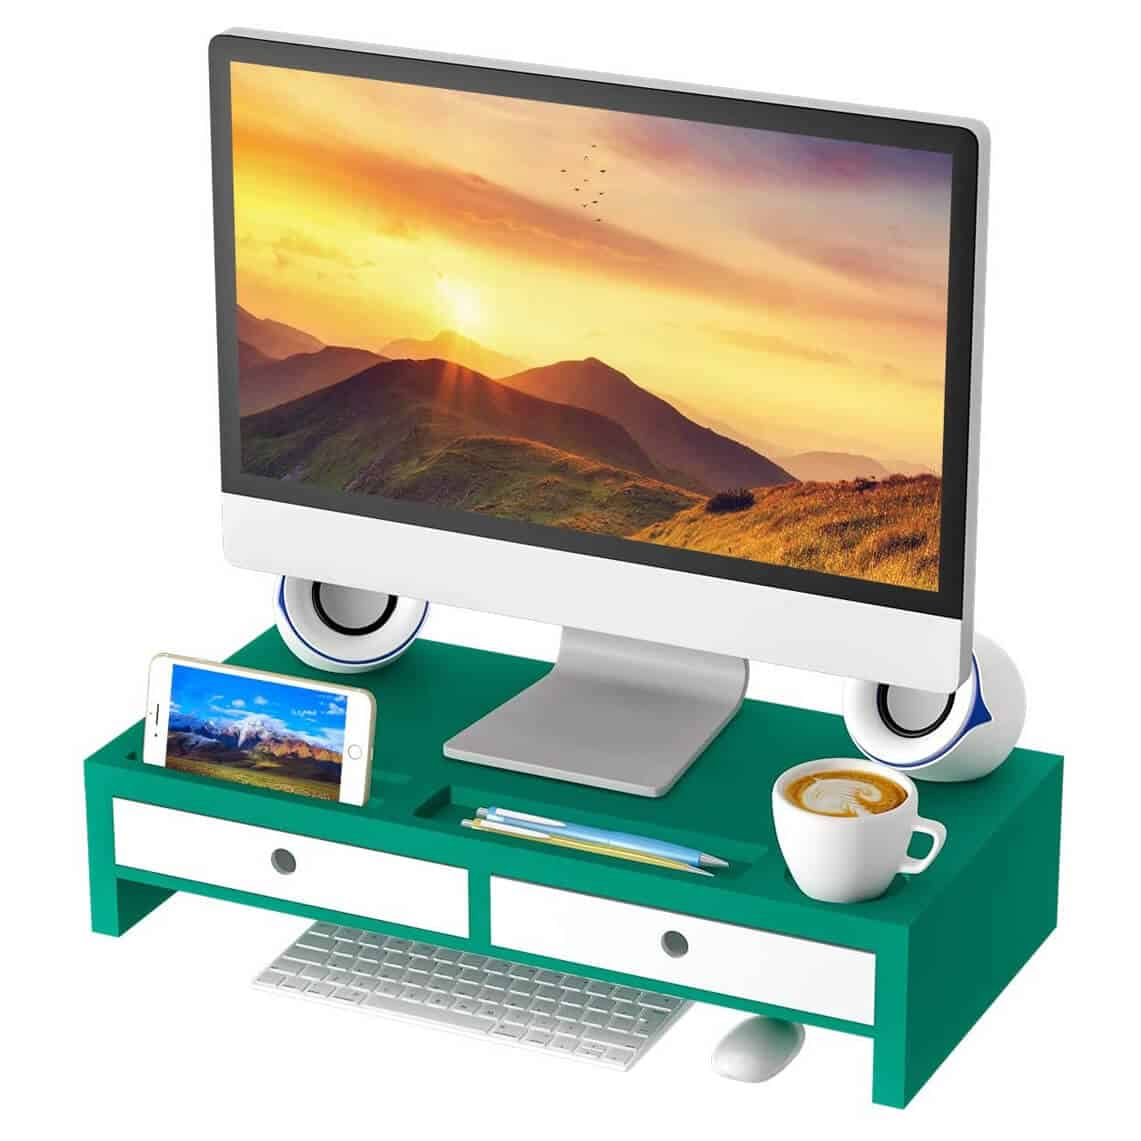 Zri Bamboo Wooden Monitor Stand in Green and White